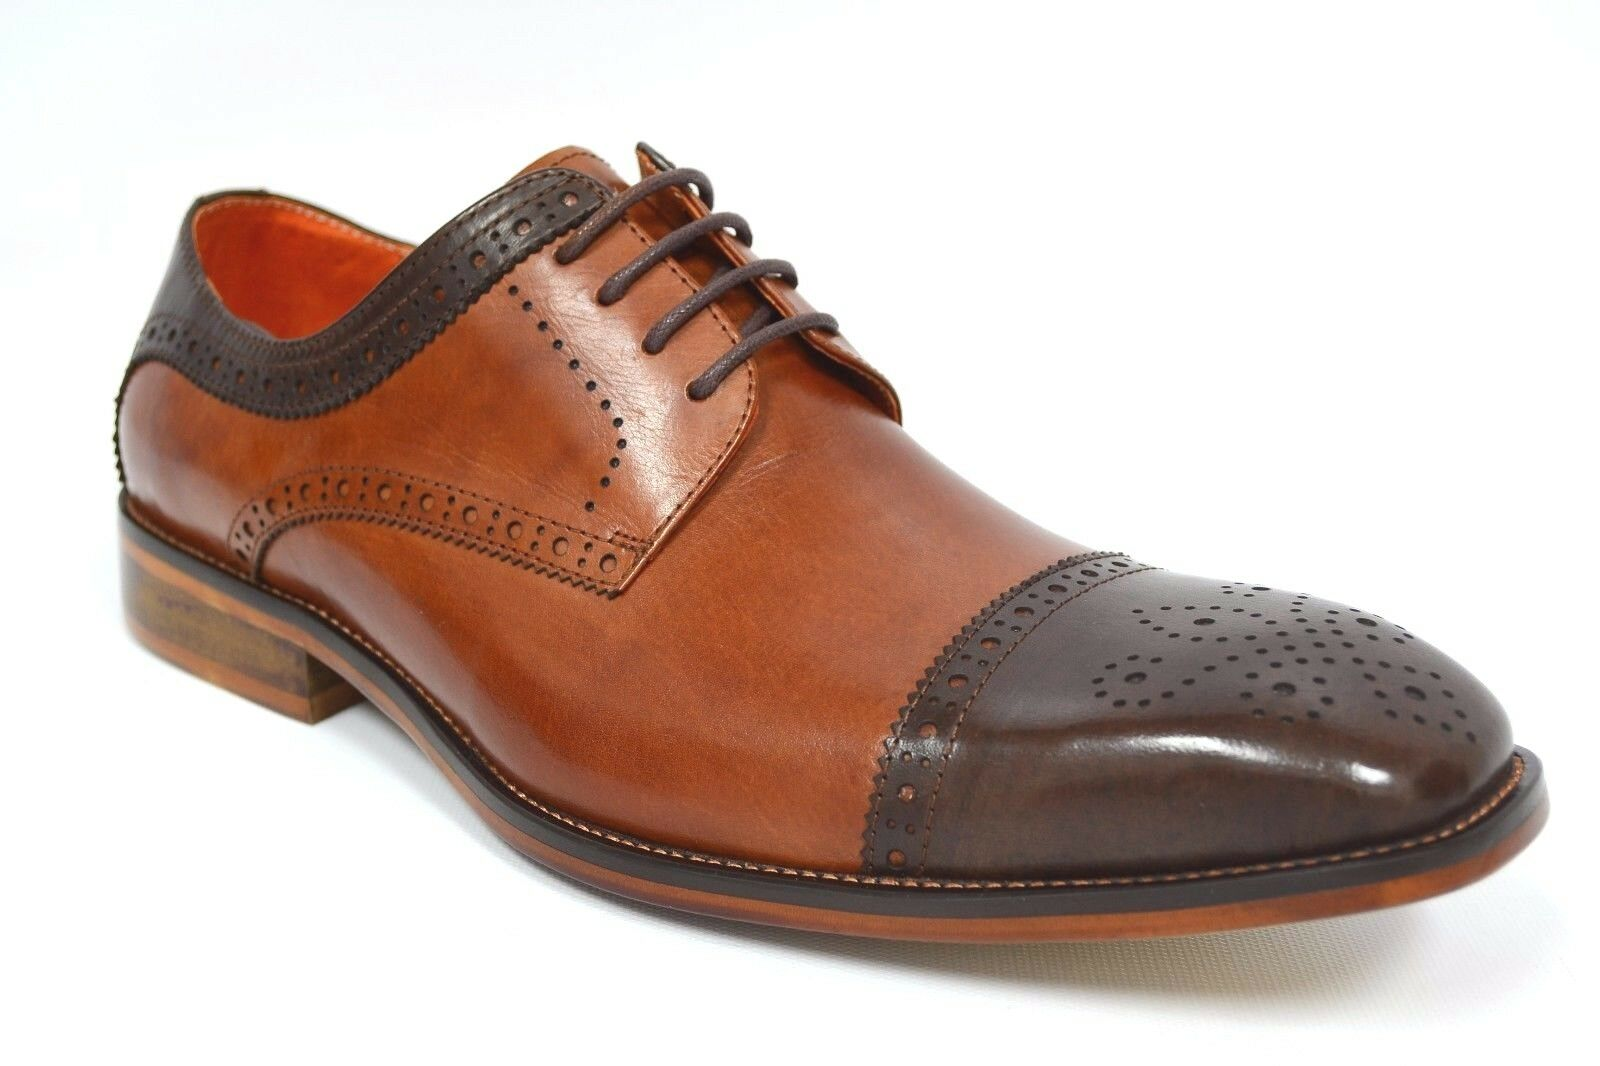 Mens Steven Land Shoes SL0008 Chocolate Brown and Tan Cap Toe Oxfords